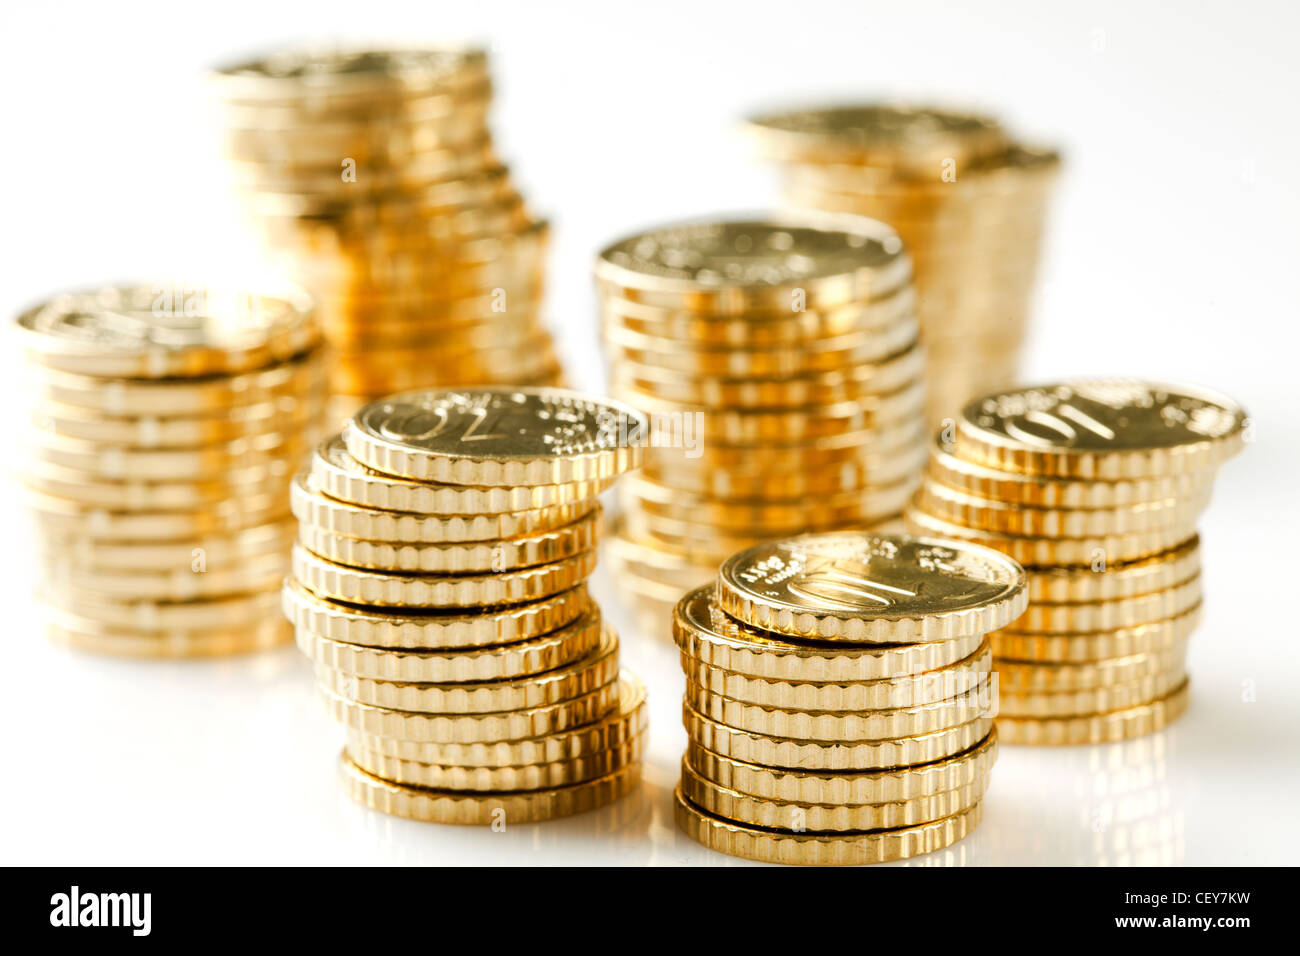 golden coins - Stock Image